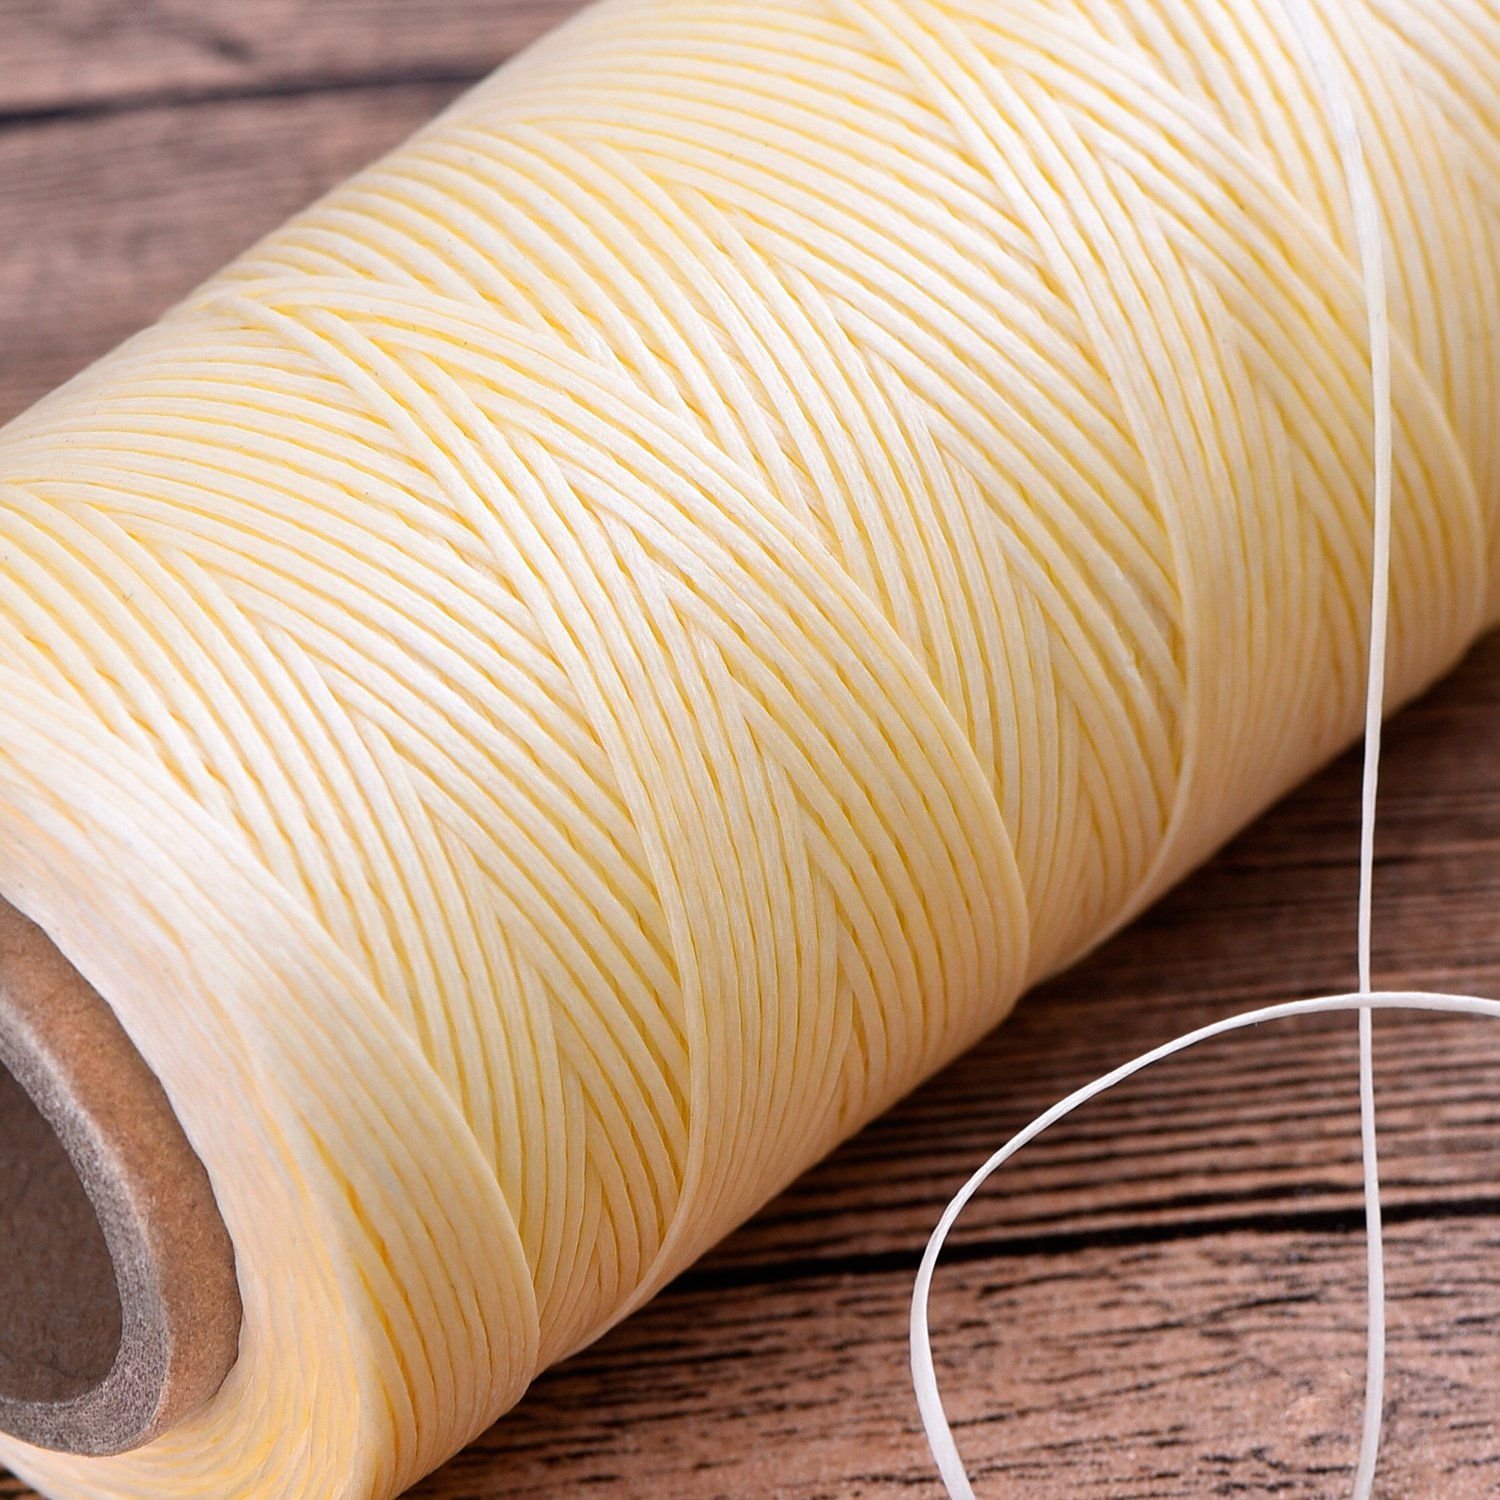 eBoot 260m 150D 1 mm Leather Sewing Waxed Thread Cord for Leather Craft DIY Black